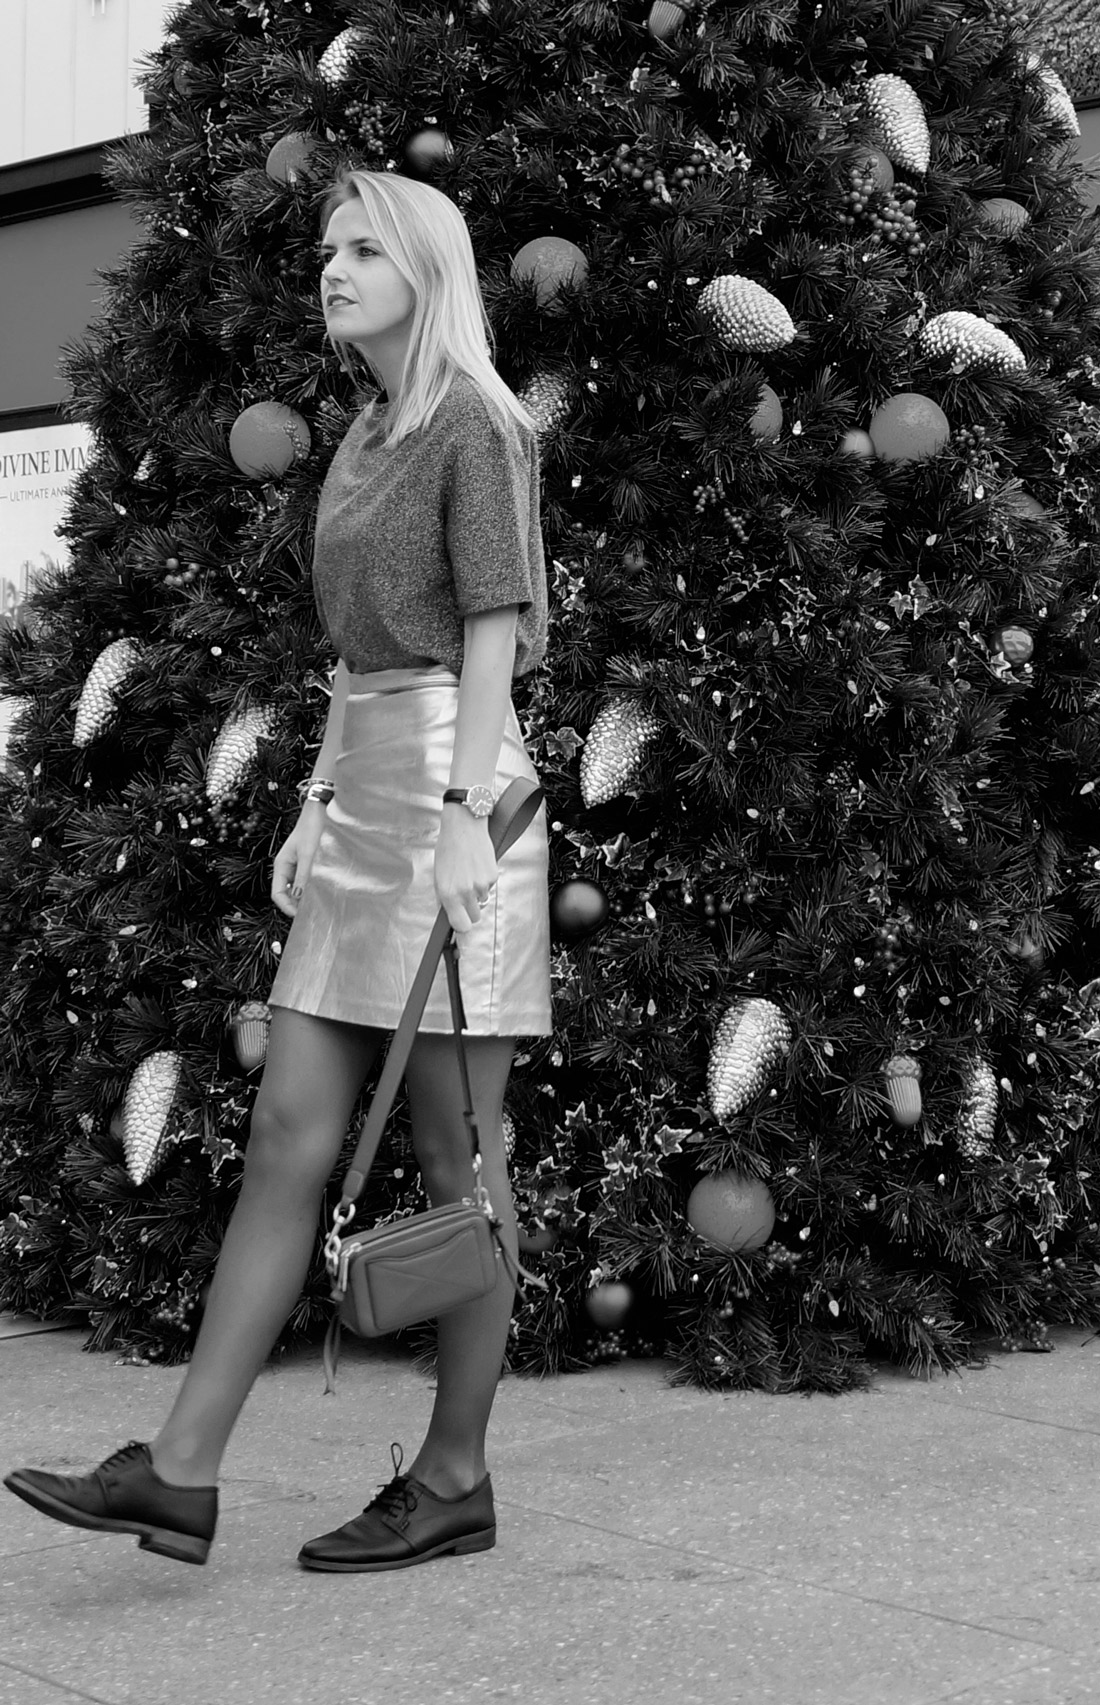 bag-at-you-fashion-blog-christmas-tree-outfit